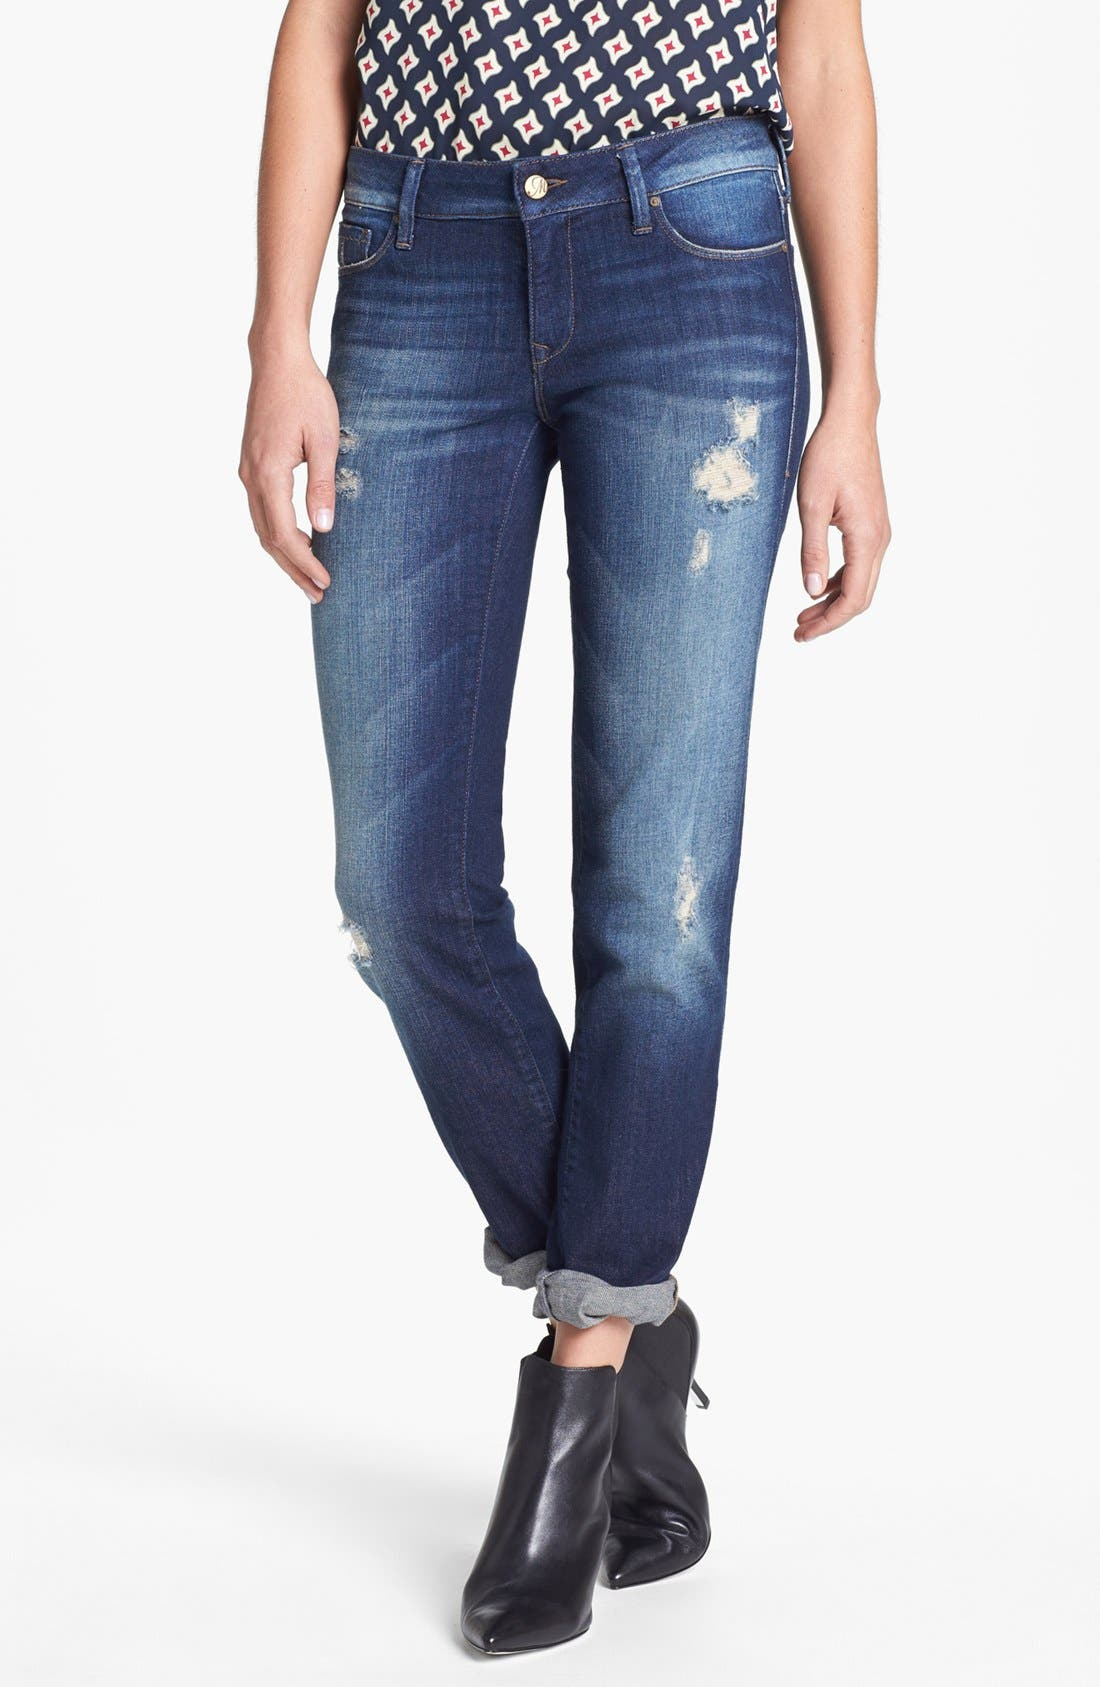 Alternate Image 1 Selected - Mavi Jeans 'Emma' Slim Fit Boyfriend Jeans (Vintage)